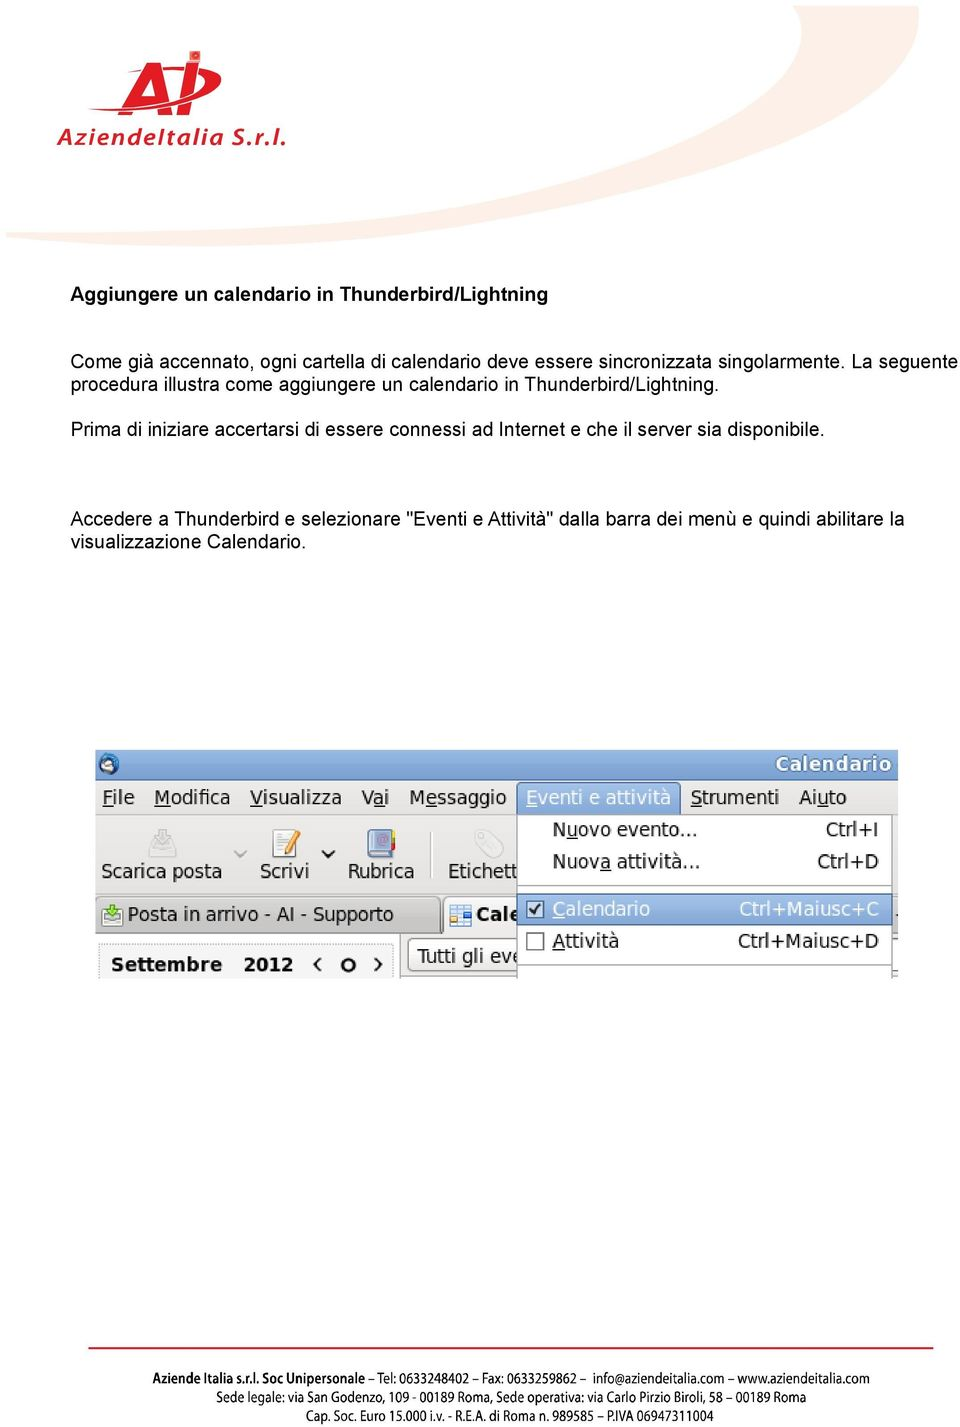 La seguente procedura illustra come aggiungere un calendario in Thunderbird/Lightning.